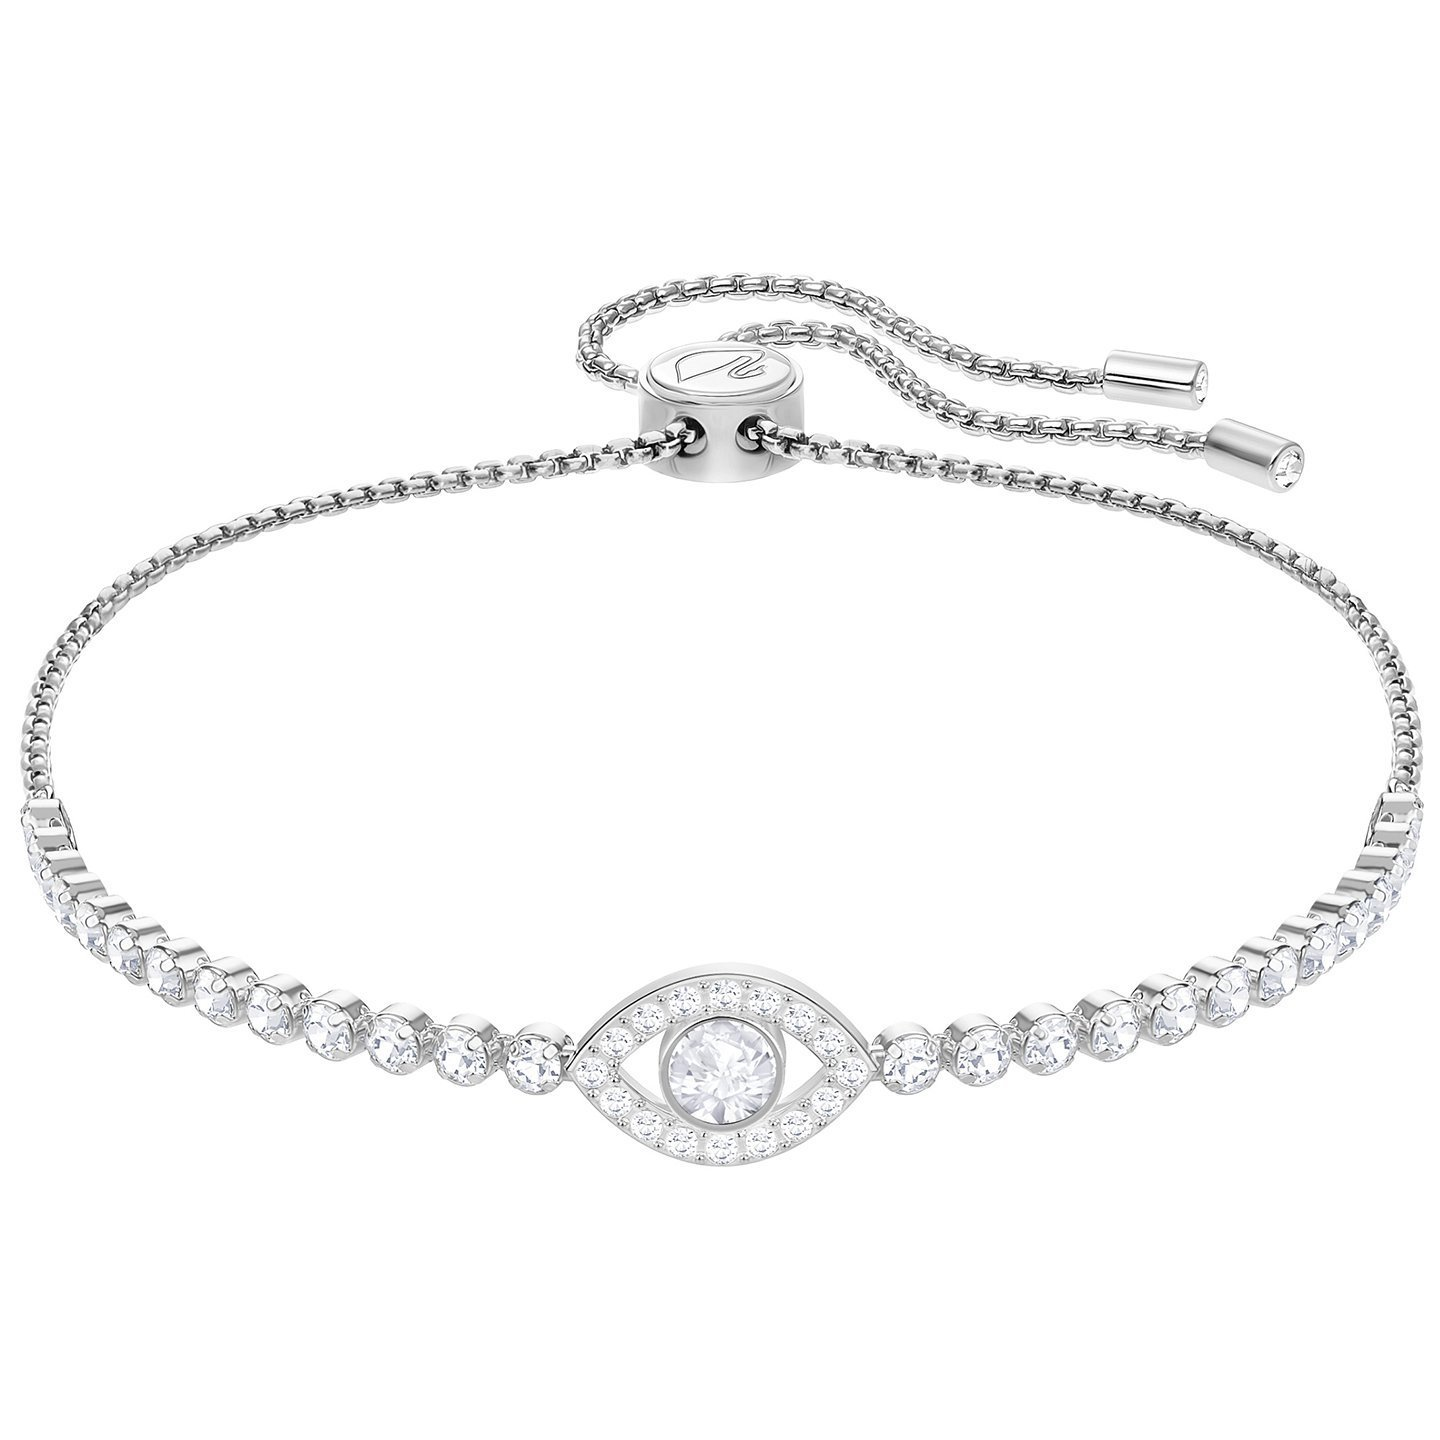 1440x1440 Swarovski Subtle Evil Eye Bracelet, Medium, 5368546 Duty Free